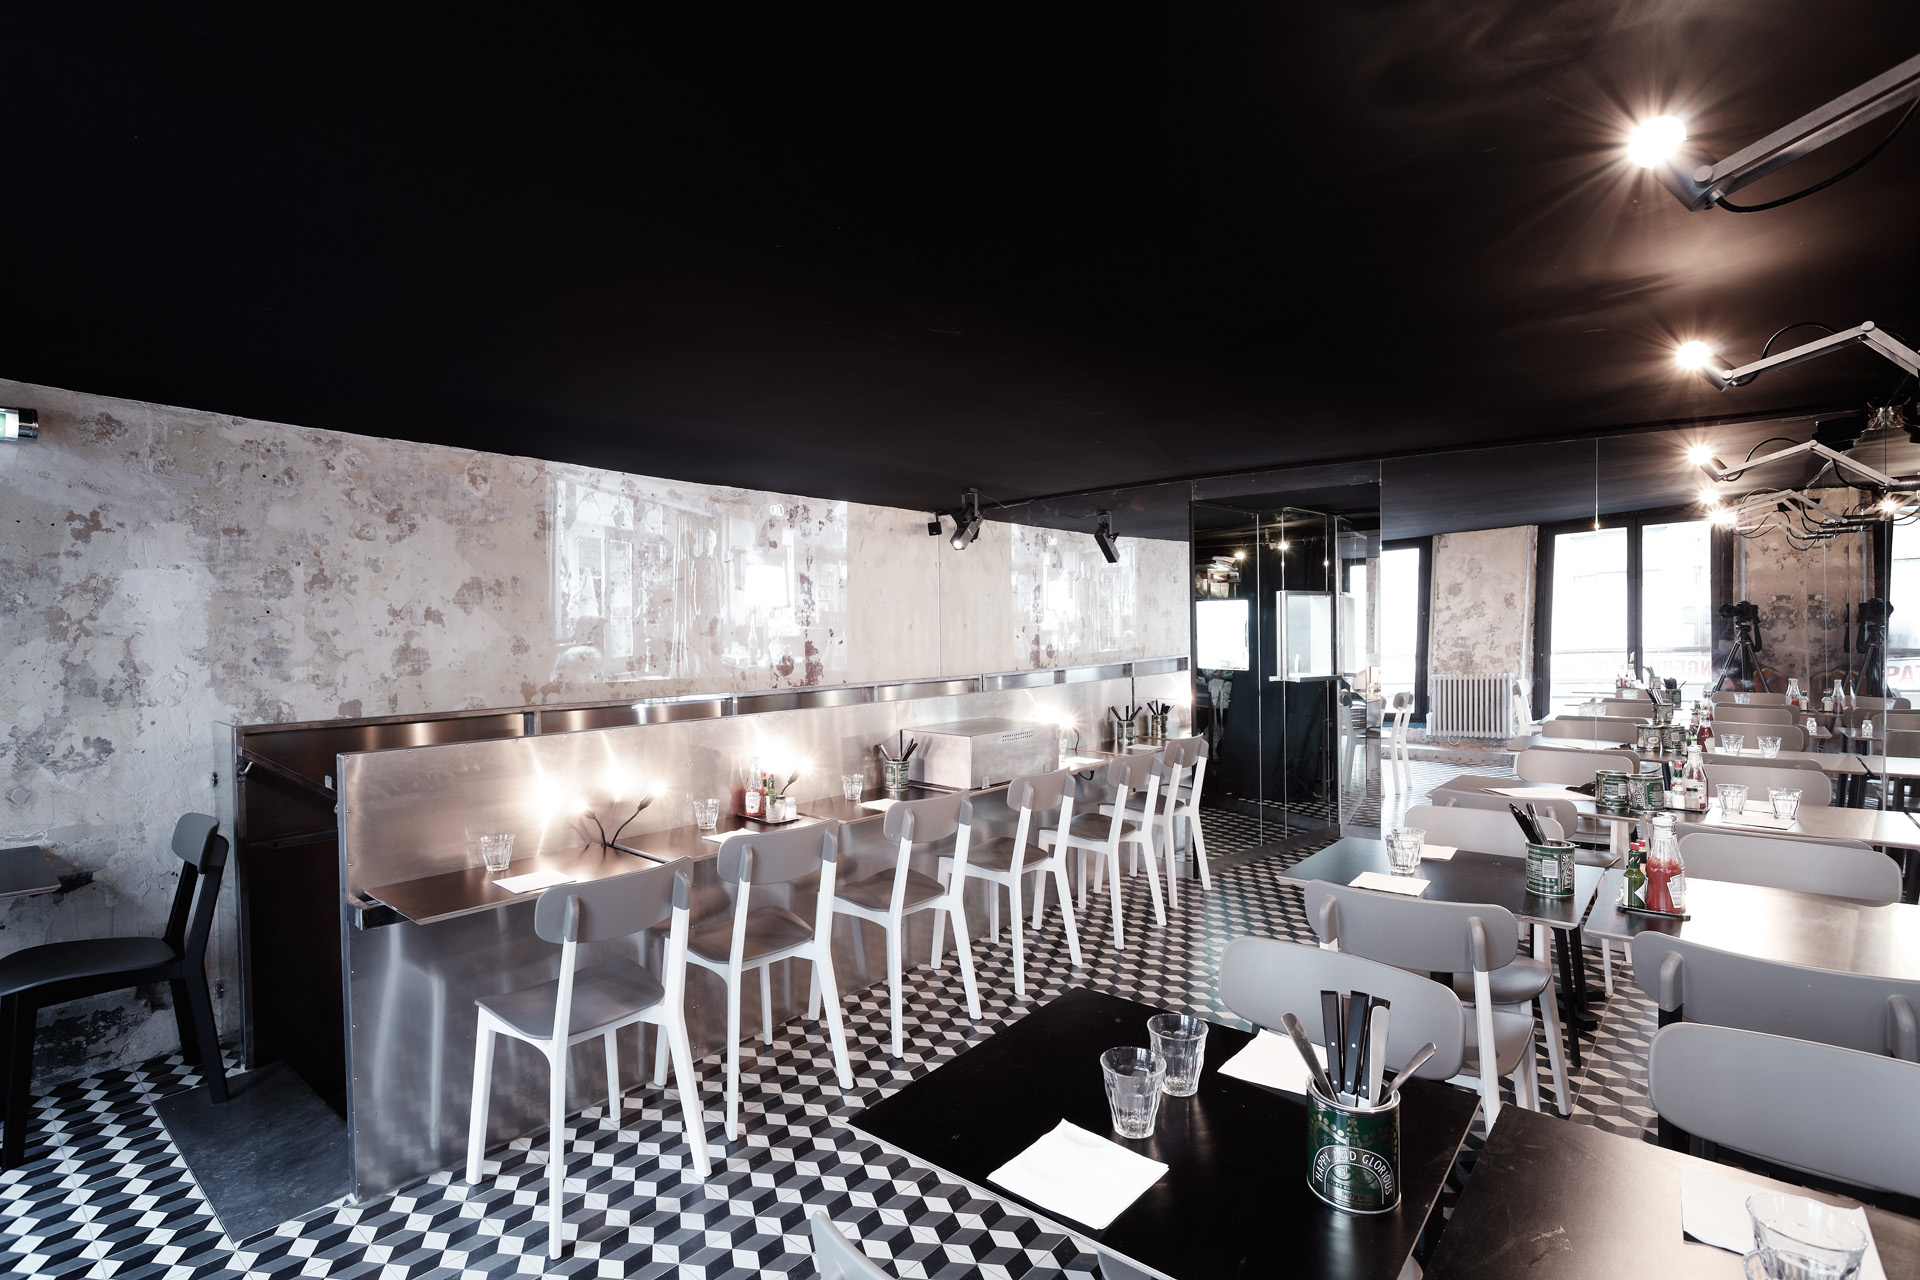 10 restaurants parisiens voir absolument architectes paris. Black Bedroom Furniture Sets. Home Design Ideas